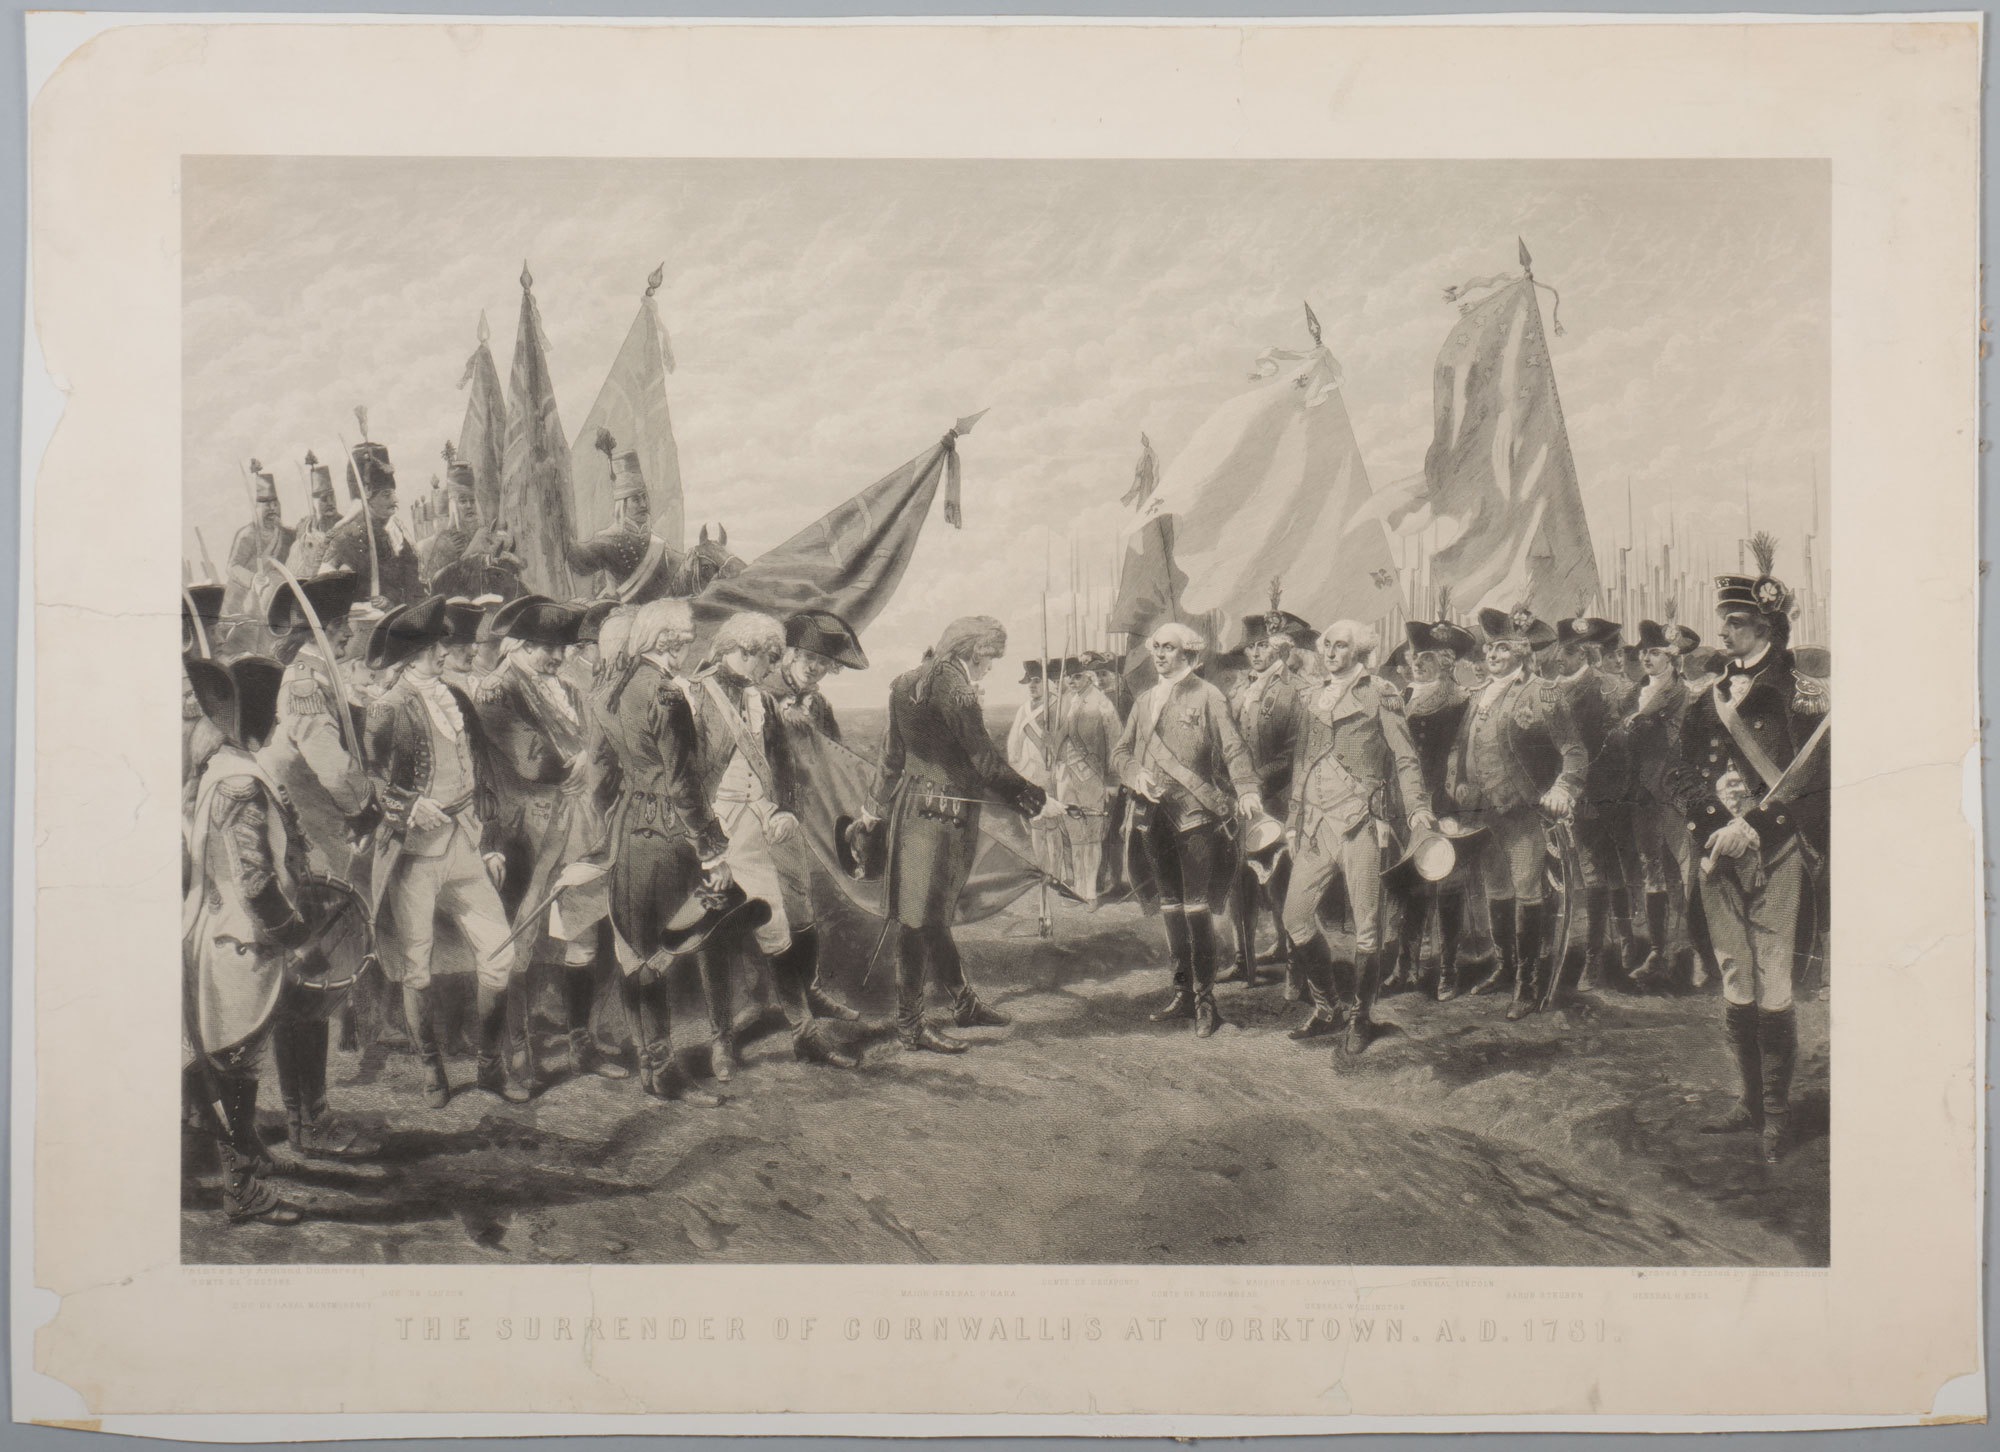 The Surrender of Cornwallis at Yorktown A.D. 1781, 1865-1875, MVLA, SC-171, Gift of Mr. and Mrs. Stanley DeForest Scott, 1985.